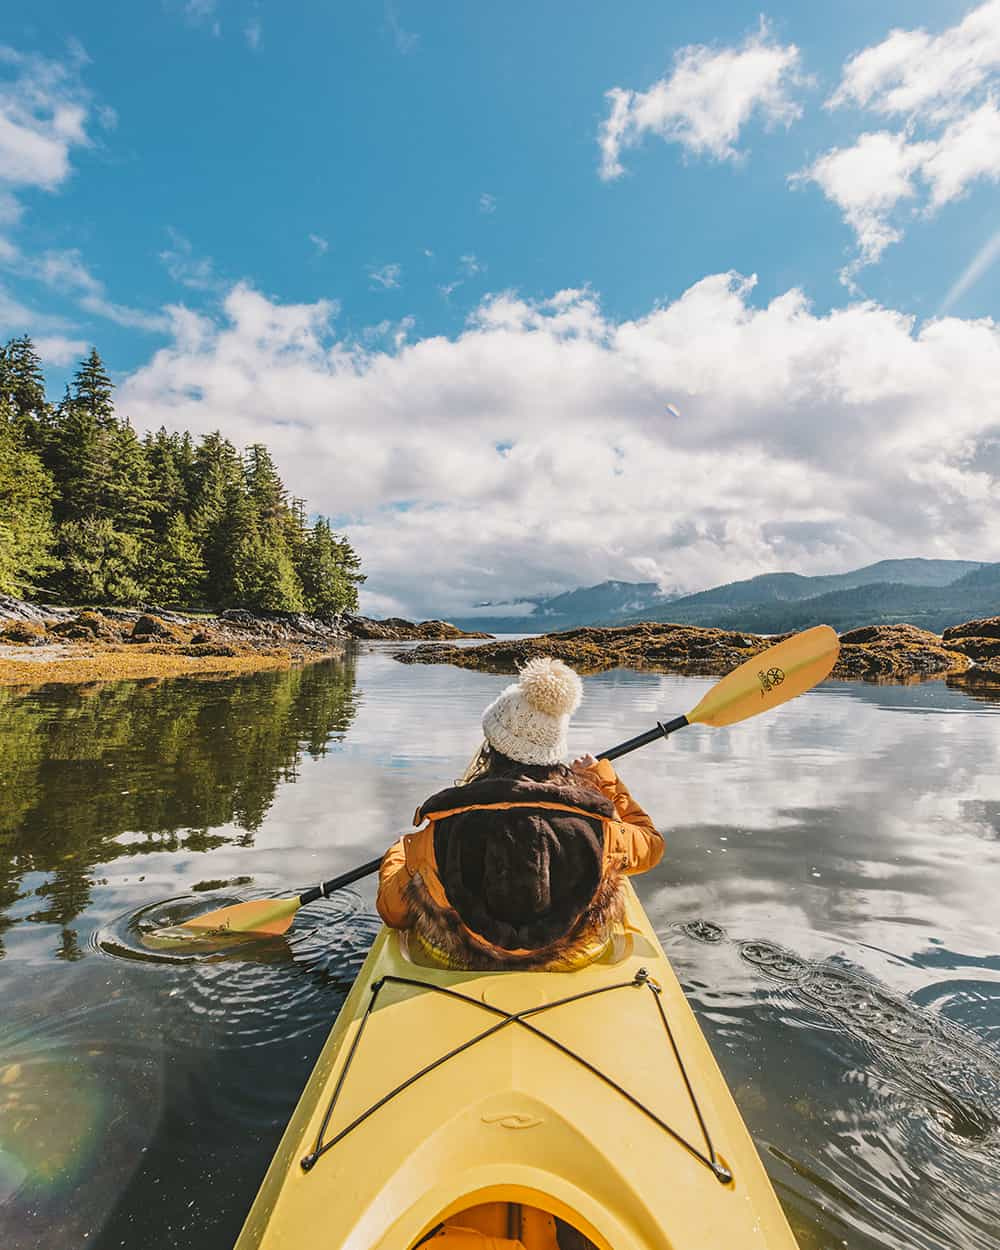 Sea kayaking in the Tongass National Forest in Alaska